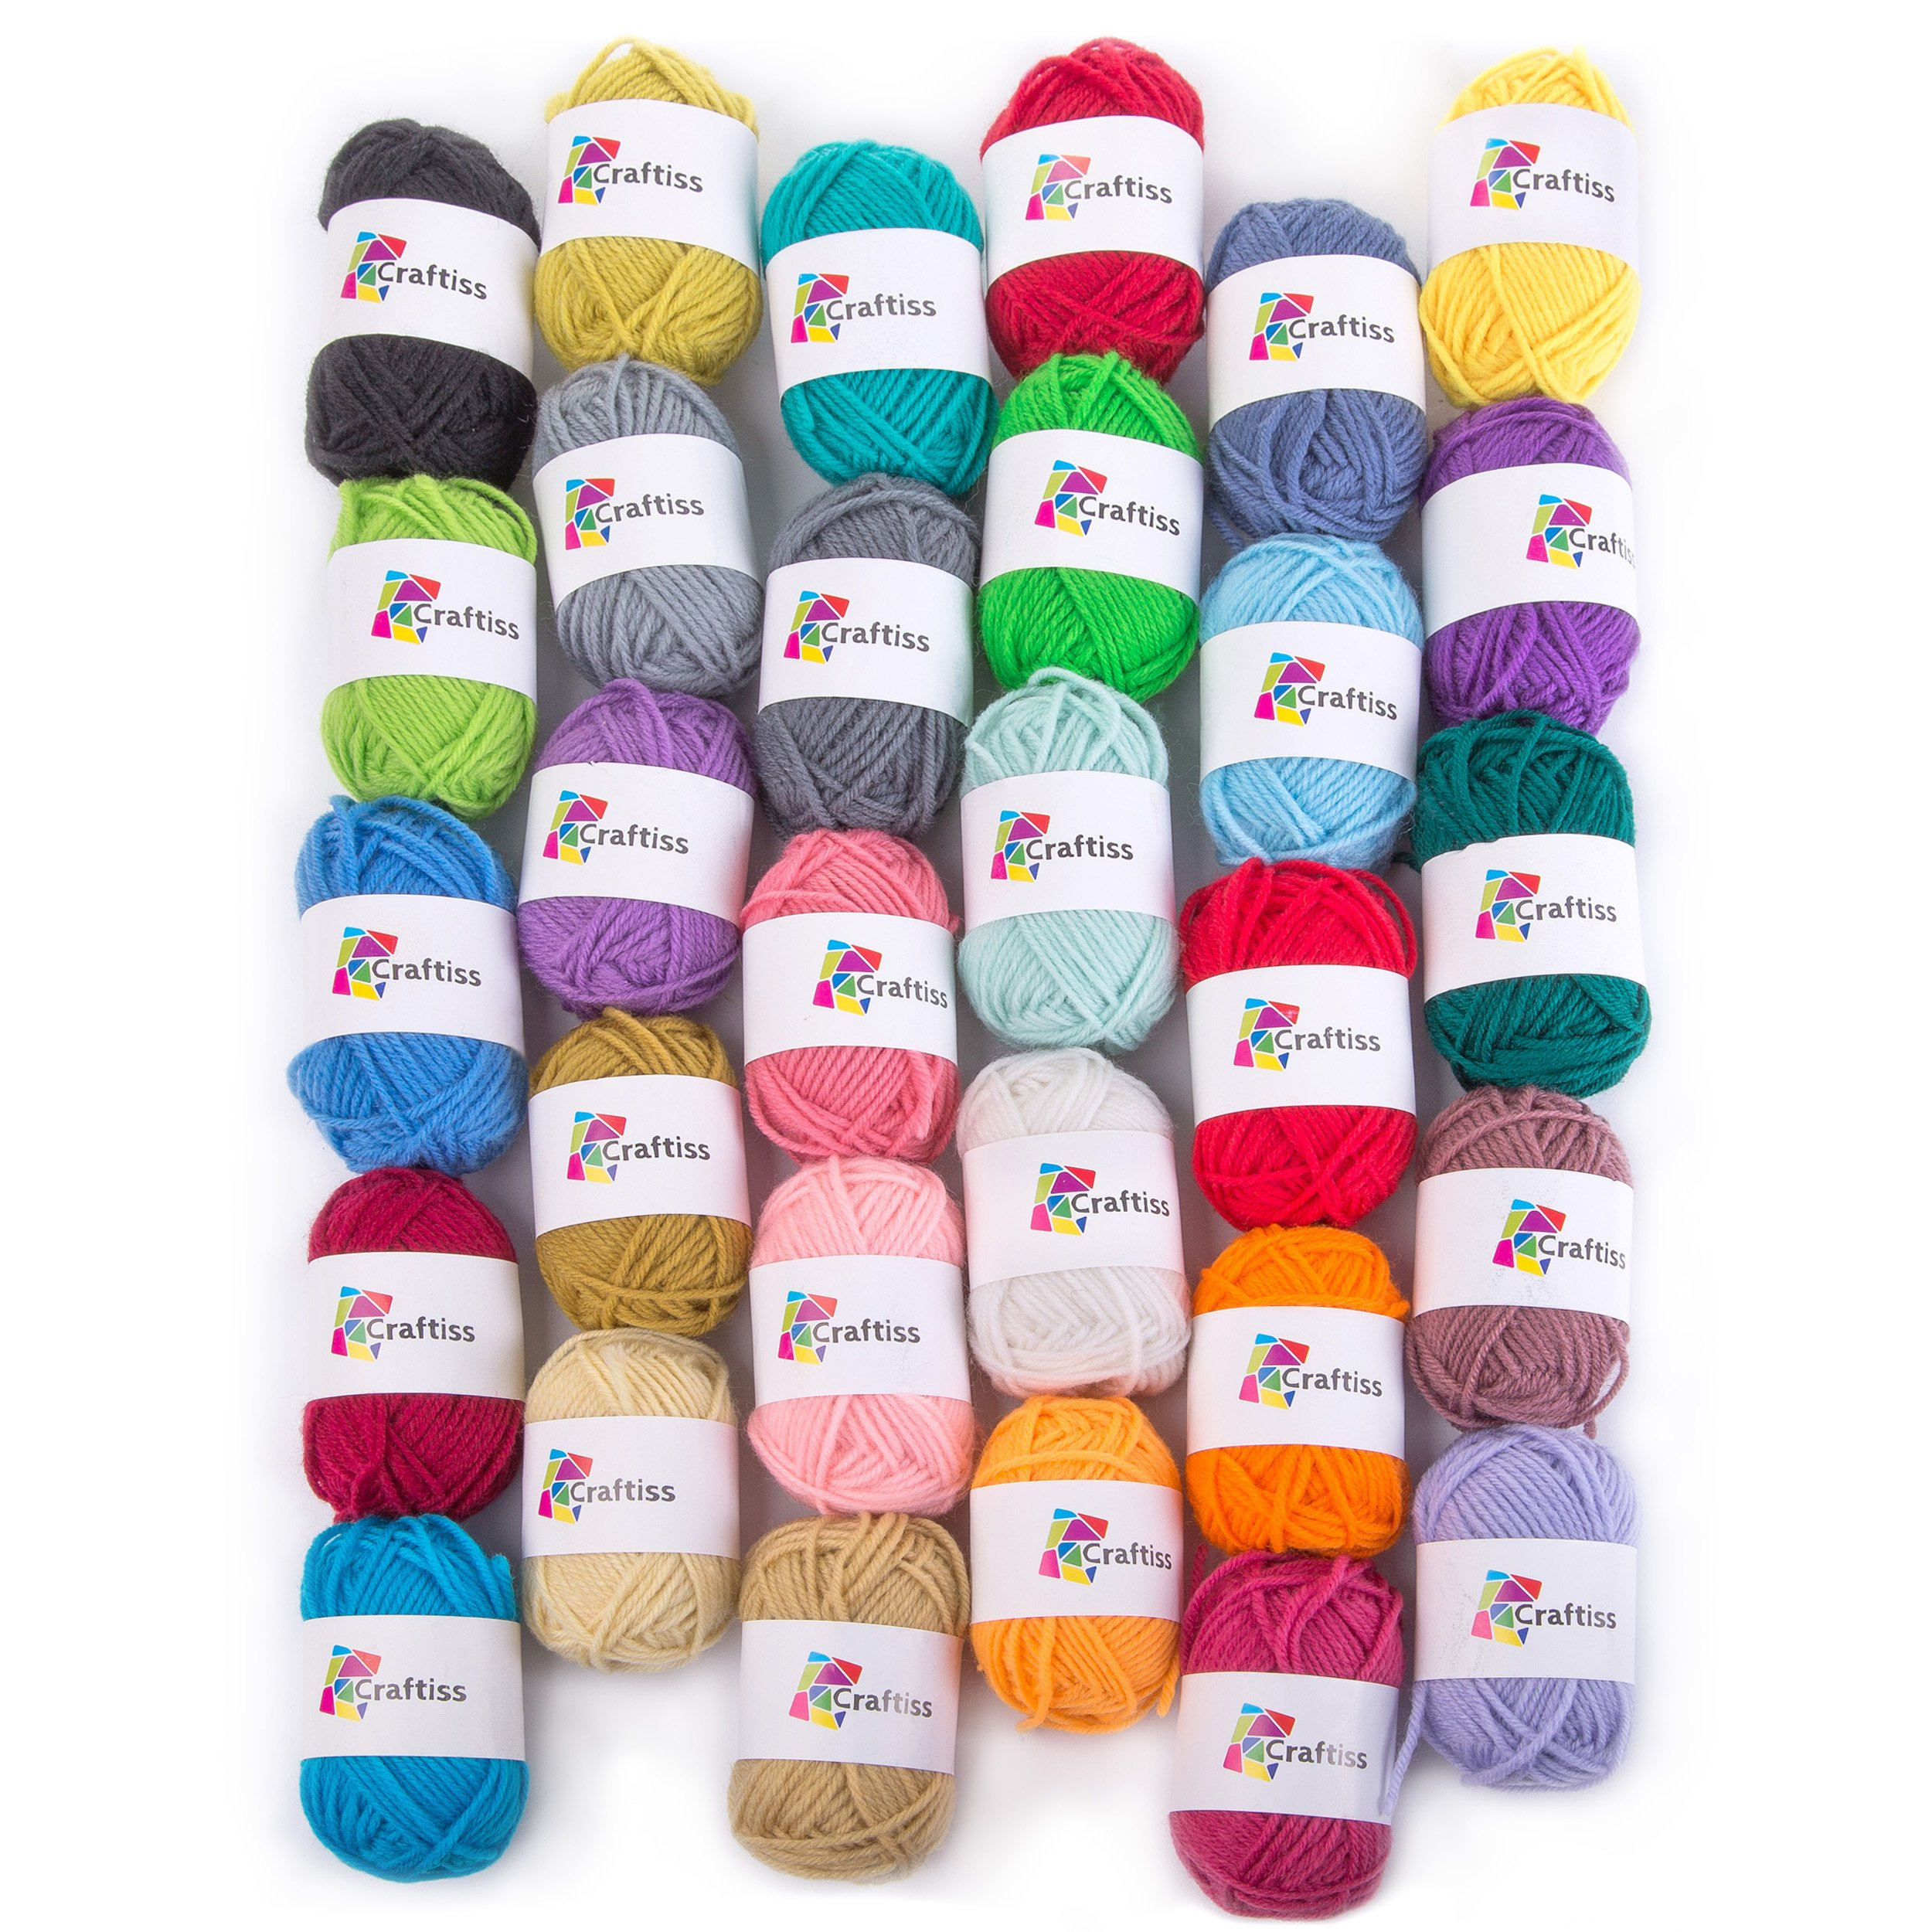 Craftiss 30 Unique Colors Acrylic Yarn Skeins ~ Bulk Yarn Kit ~ 1300 yards ~ Perfect for Any Knitting and Crochet Mini Project by Craftiss (Image #1)